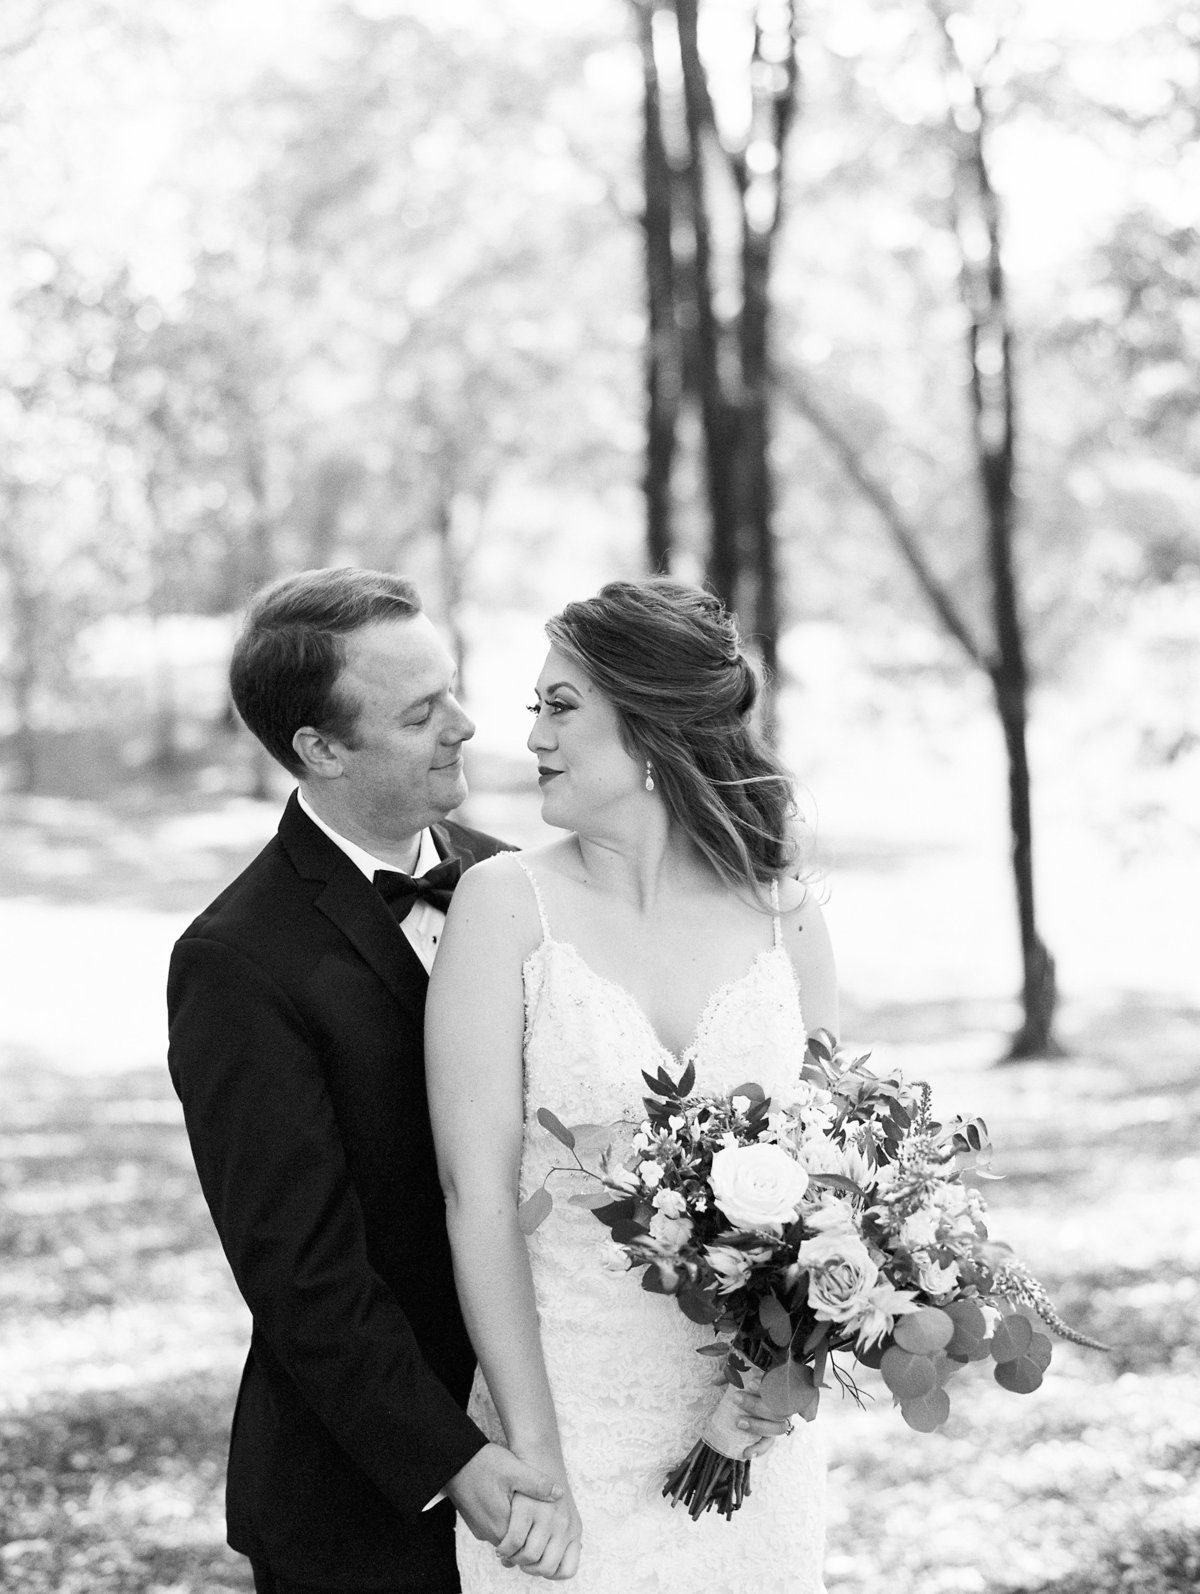 635_Anne & Ryan Wedding_Lindsay Vallas Photog